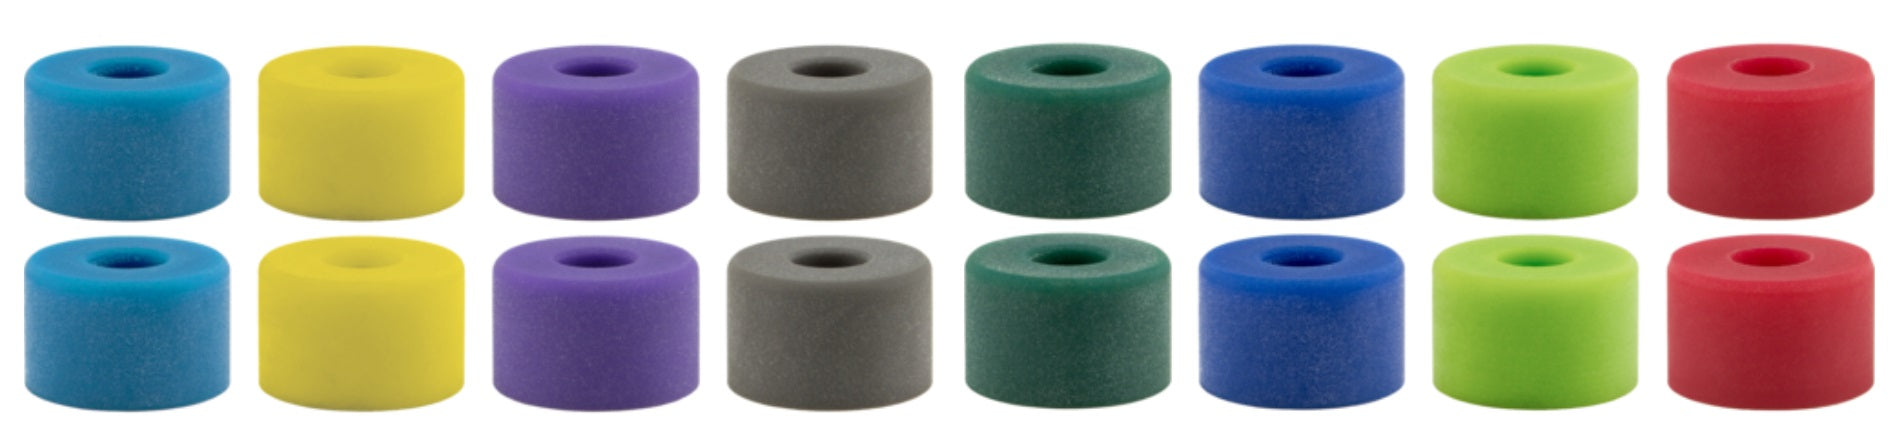 Riot Bushings